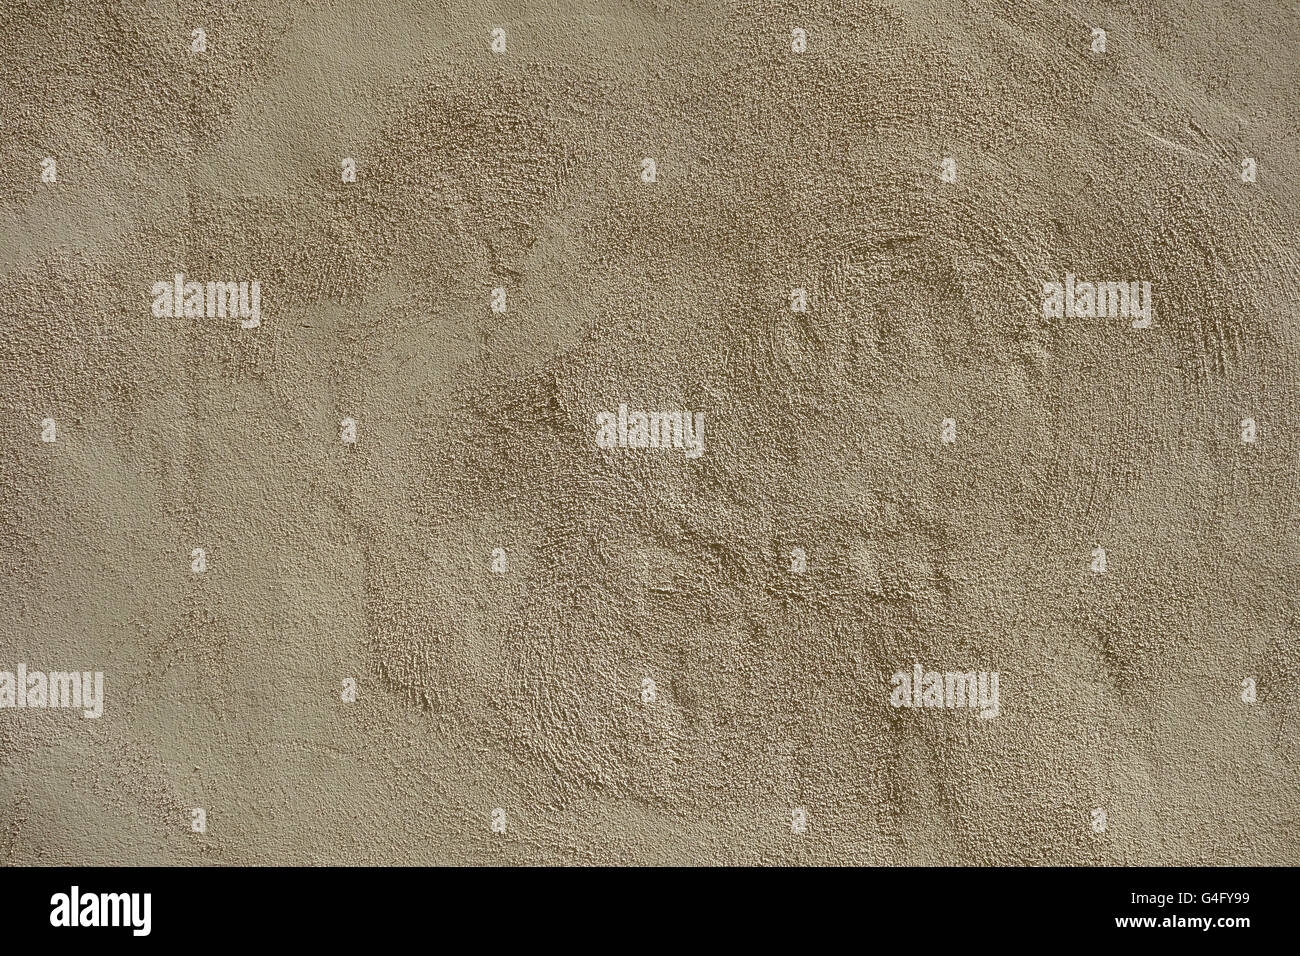 Rough sandy texture stucco wall background Stock Photo